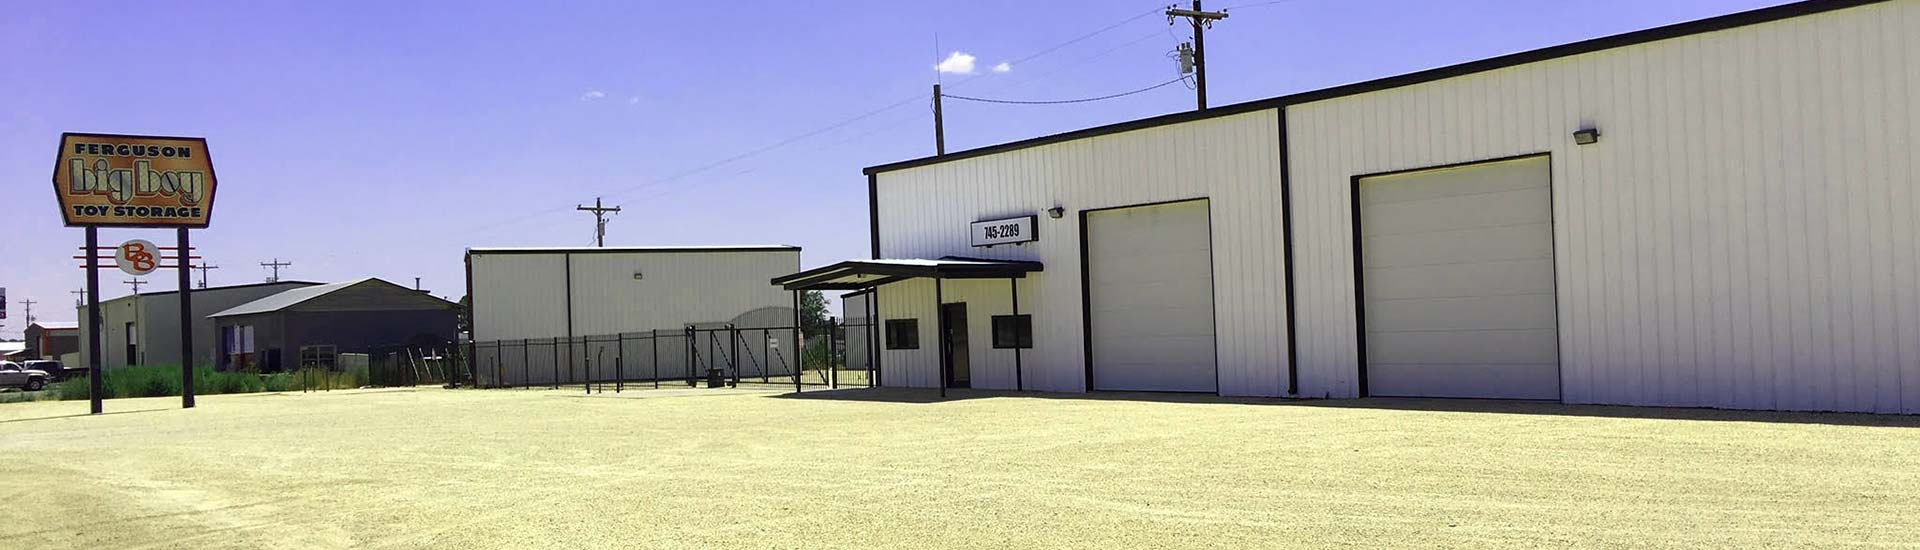 A Plus Self Storage Lubbock Tx